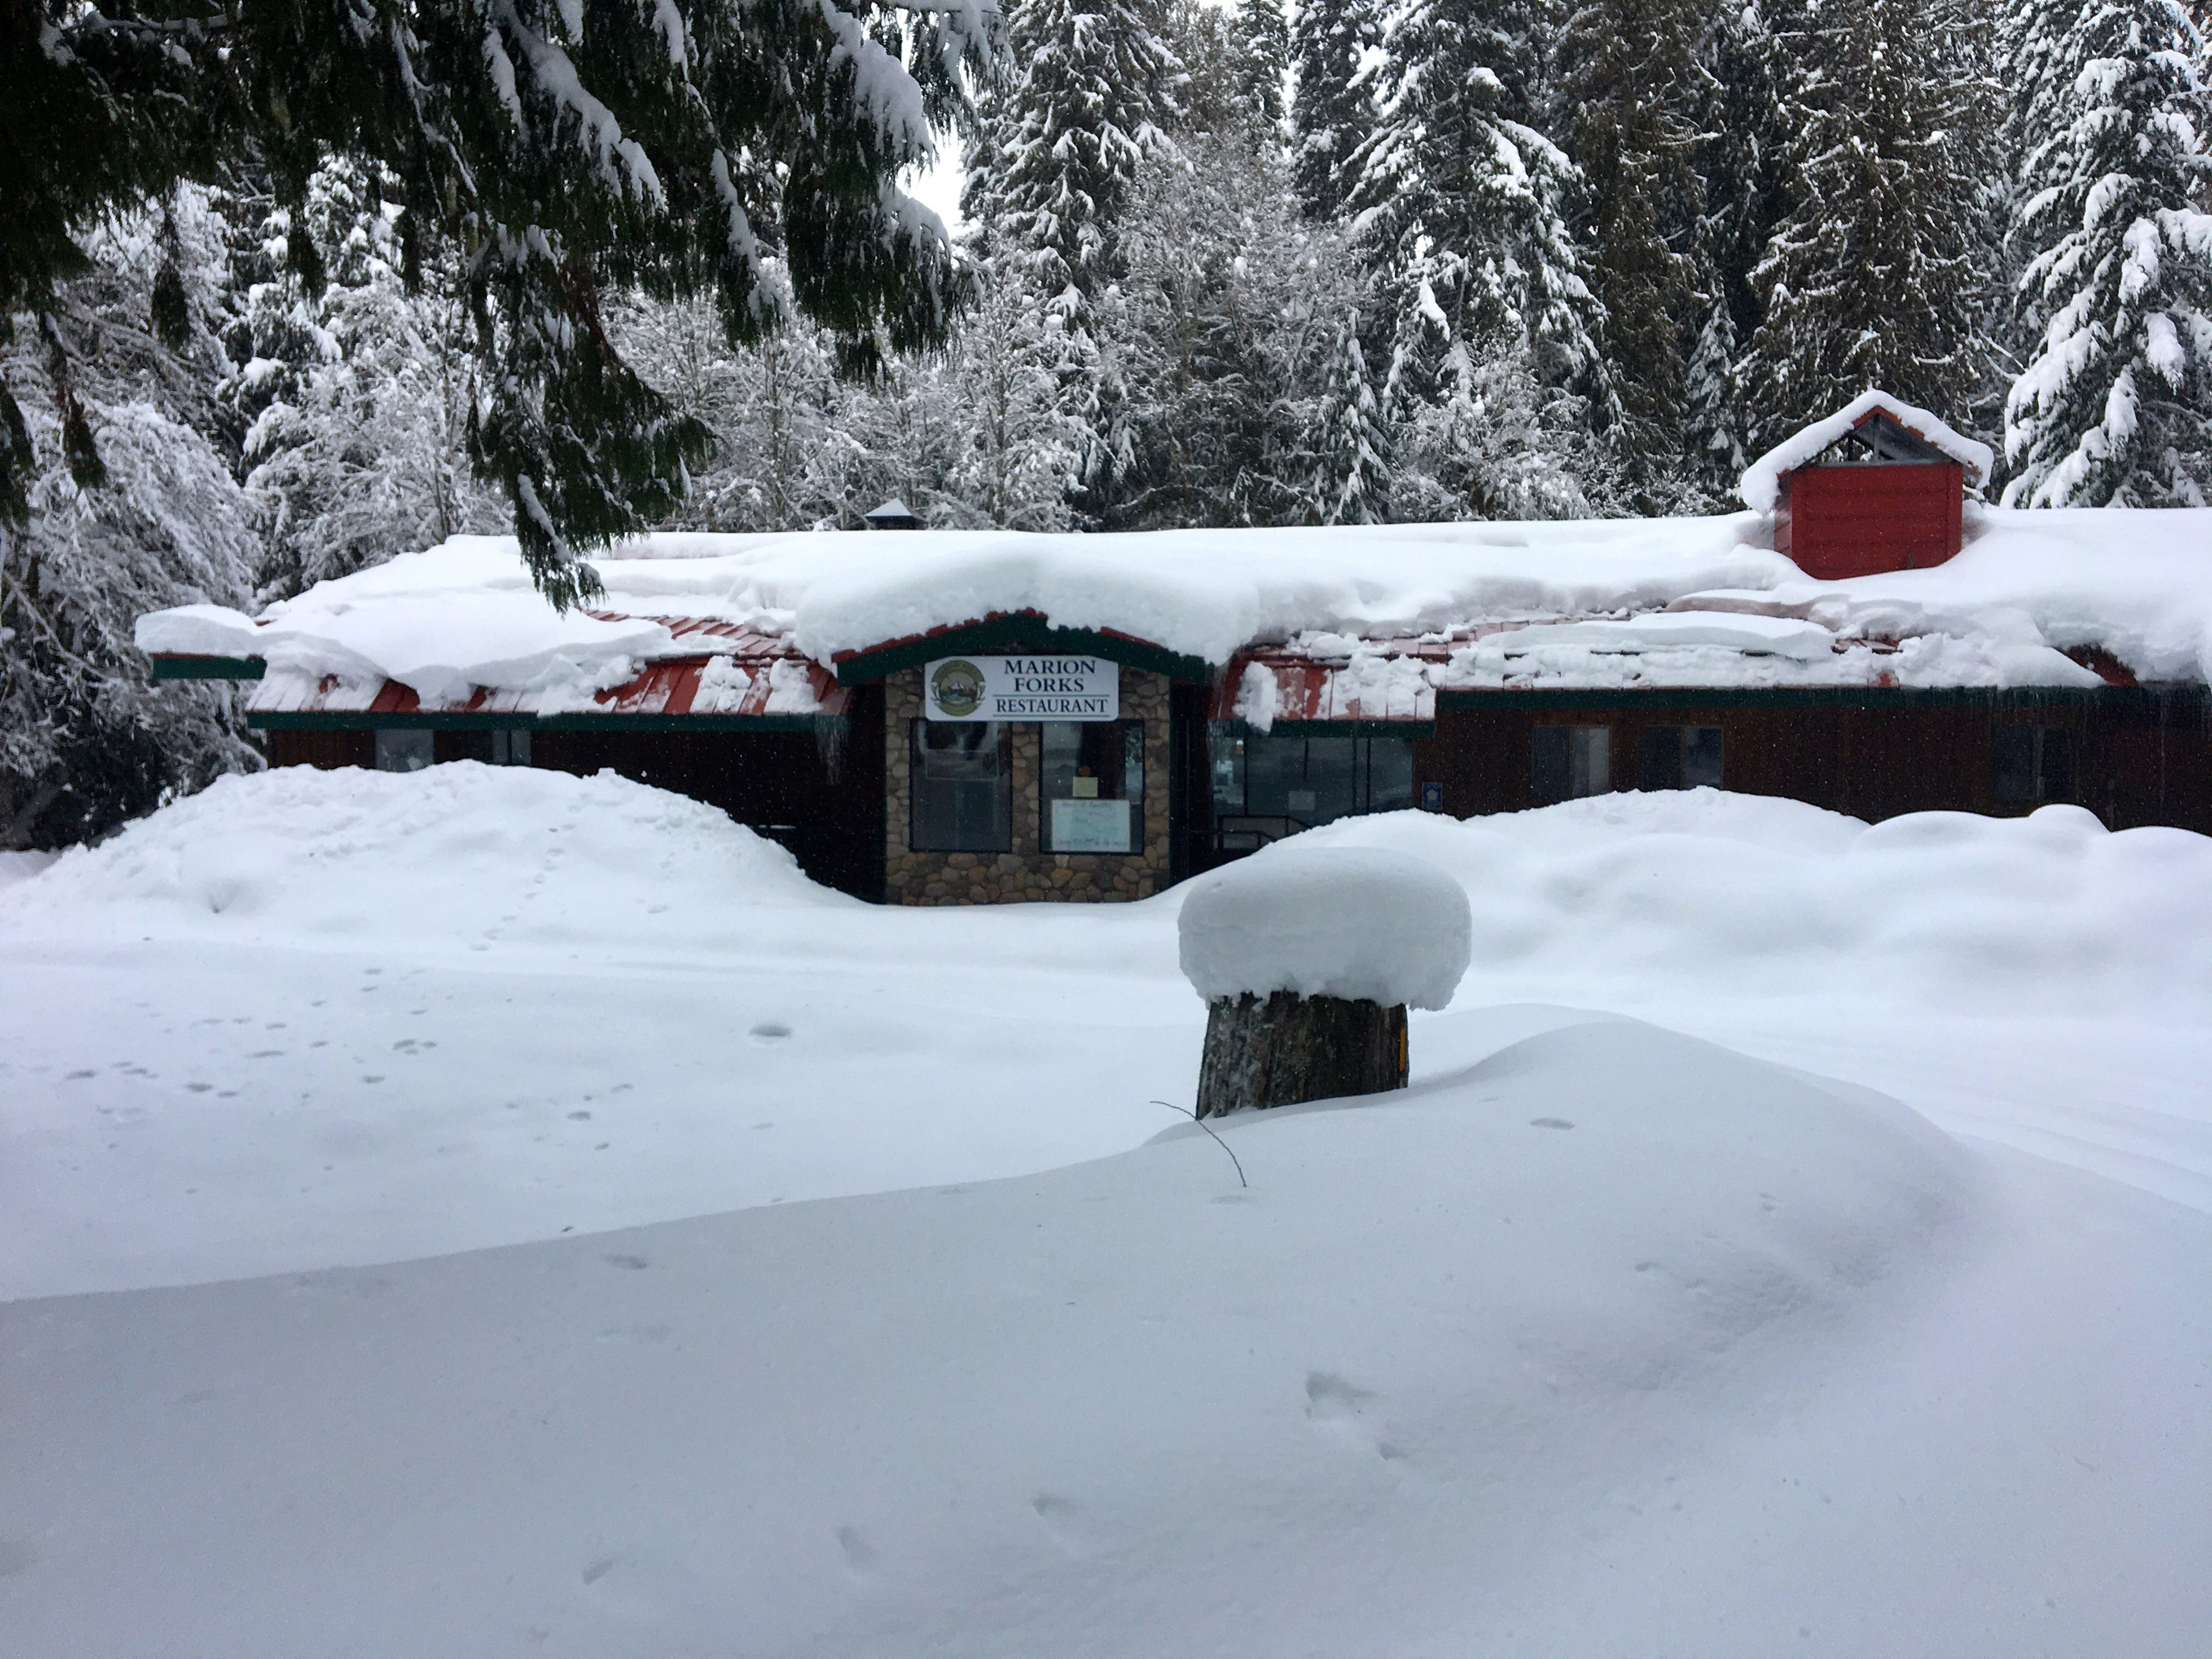 Marion Forks Restaurant, now closed, blanketed in snow.